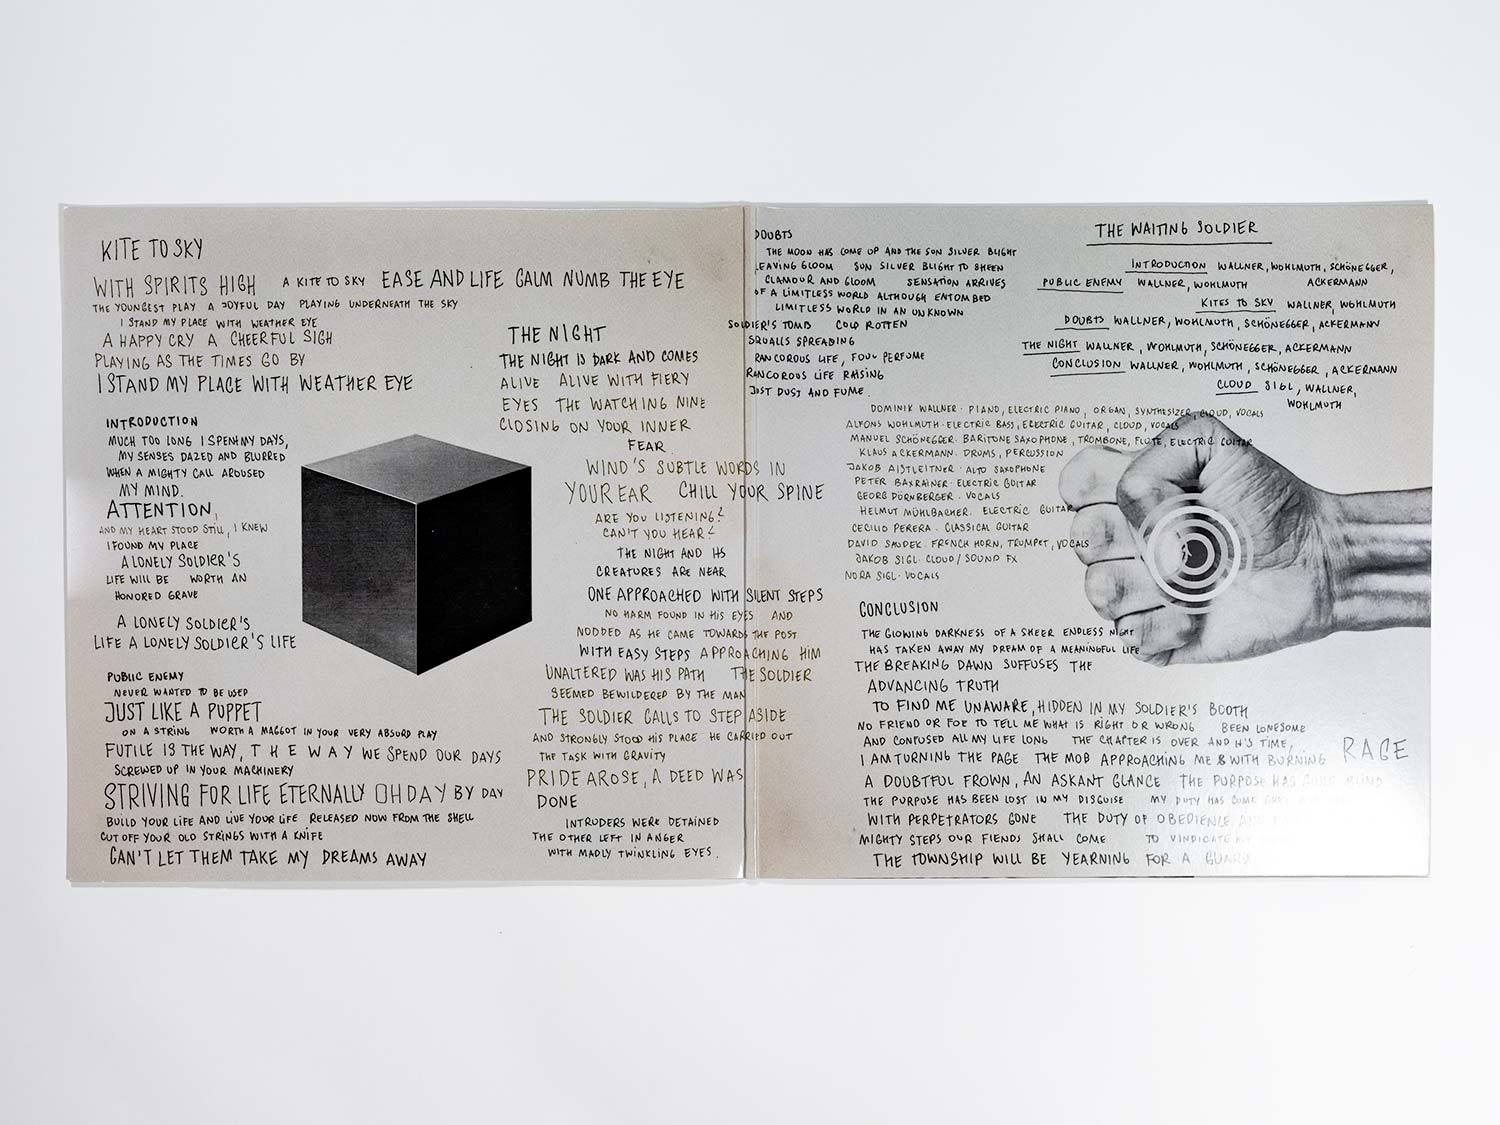 The picture shows the booklet design of Blank Manuskript's release The Waiting Soldier.